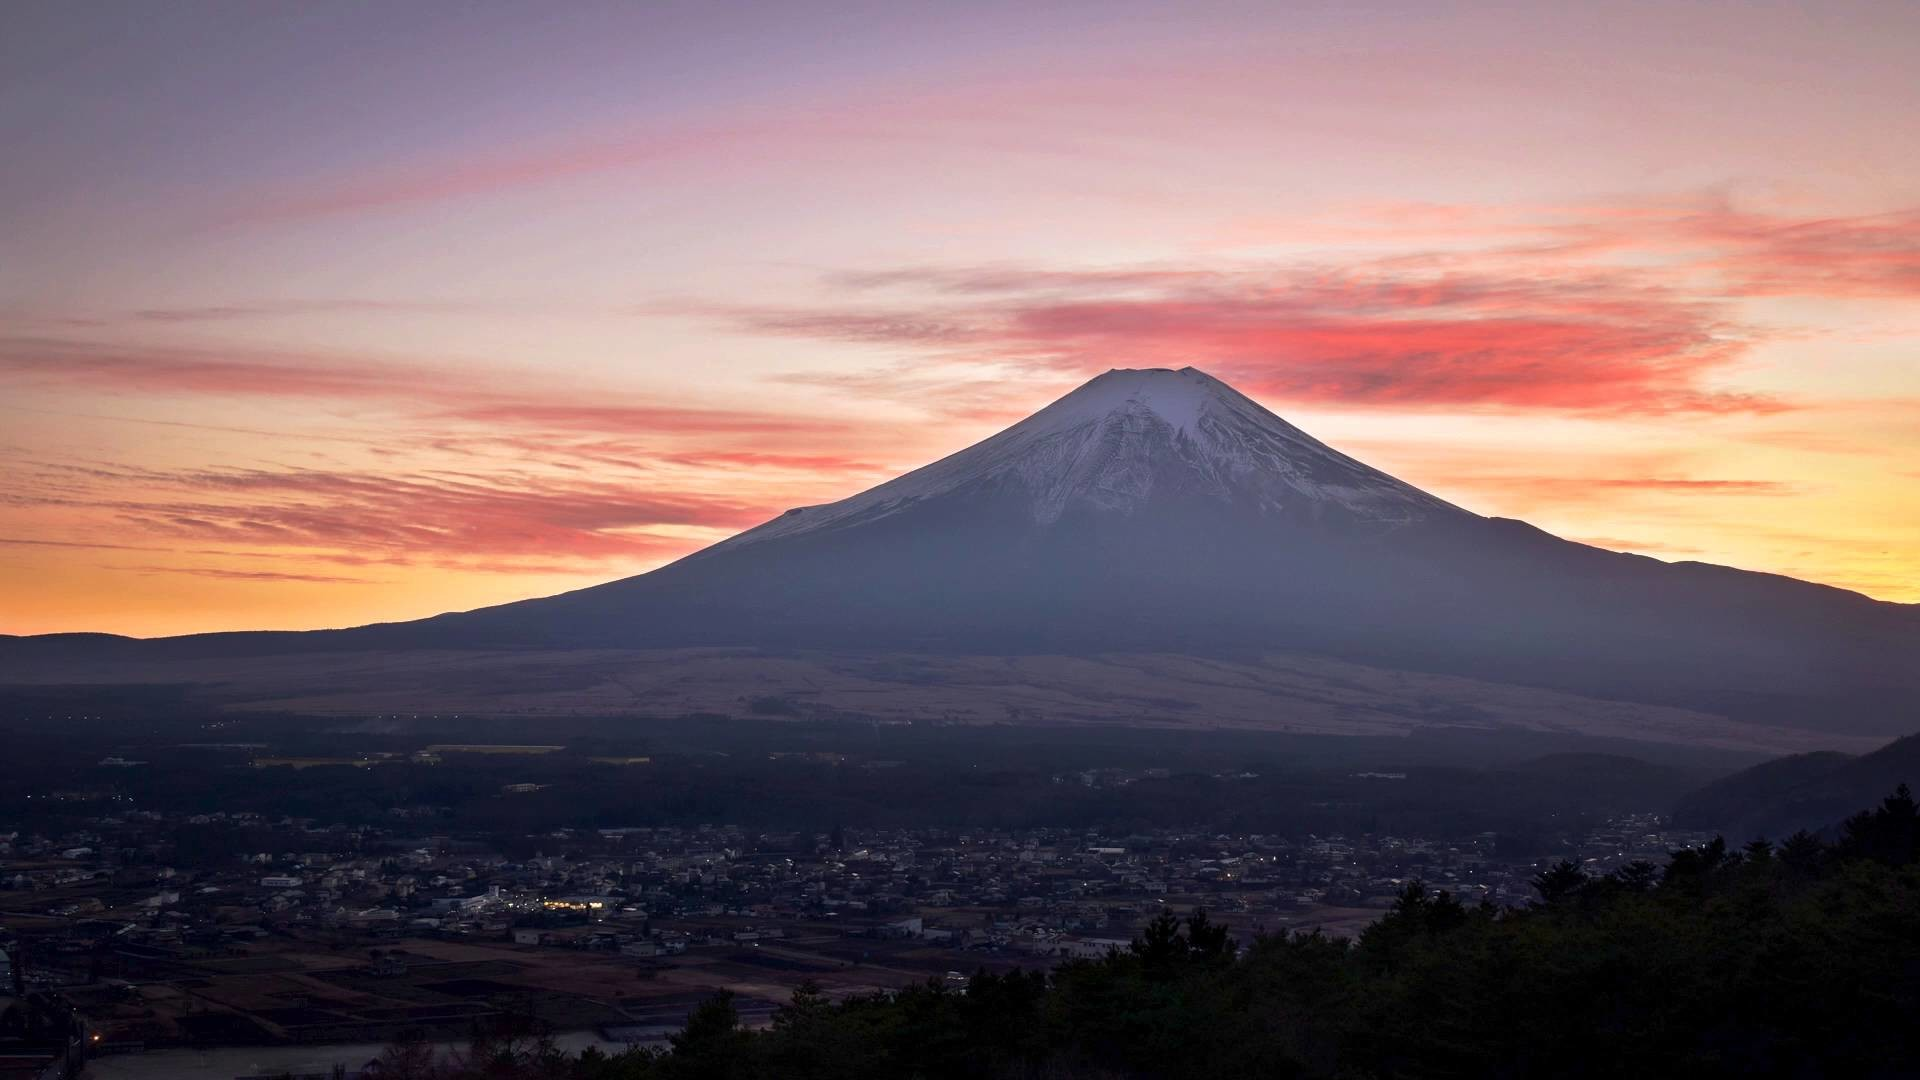 Res: 1920x1080, Mt. Fuji at Sunset (Timelapse)